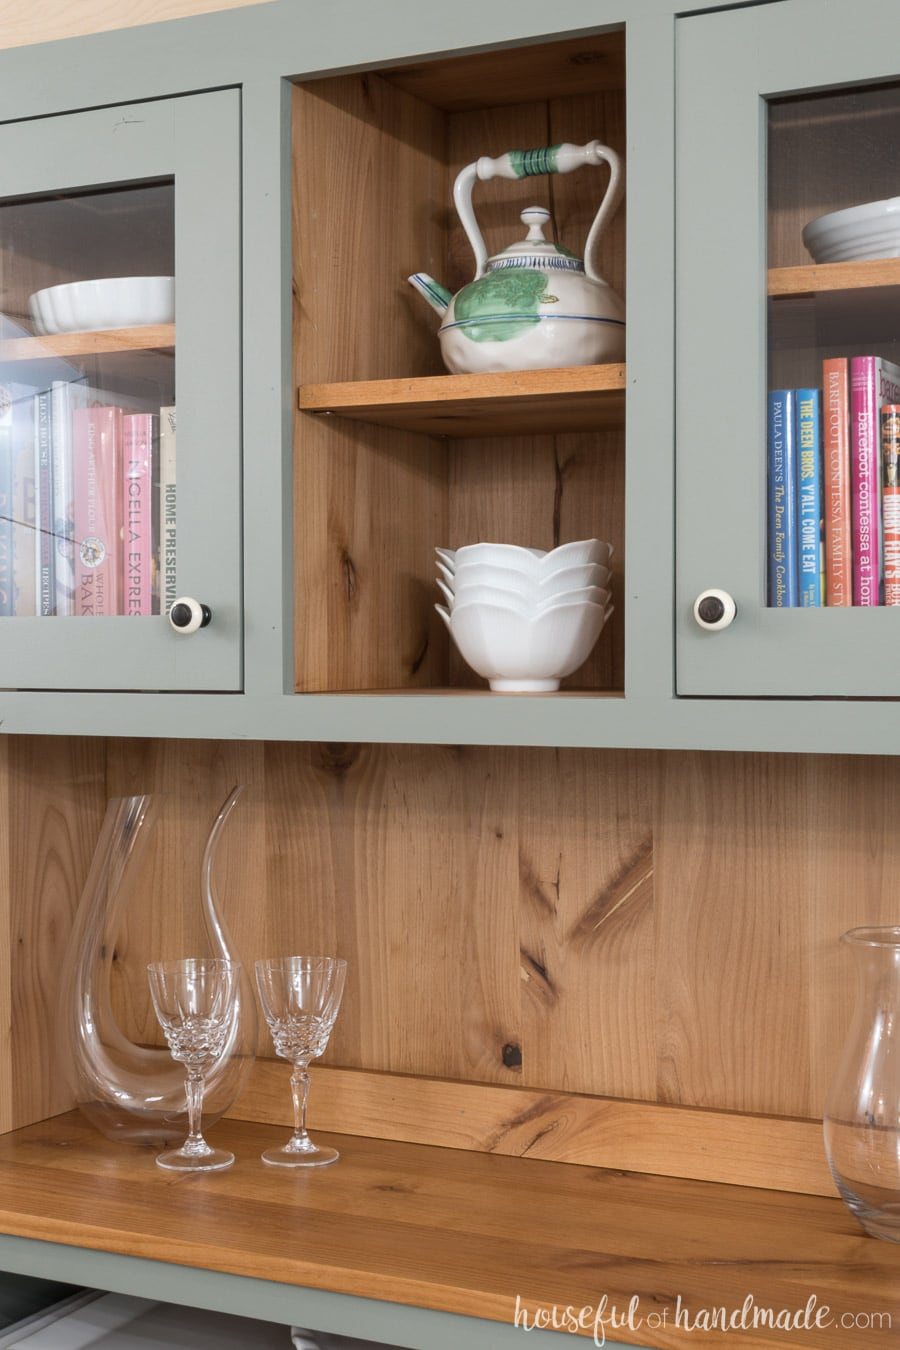 Dining Room Hutch Build Plans - Houseful of Handmade